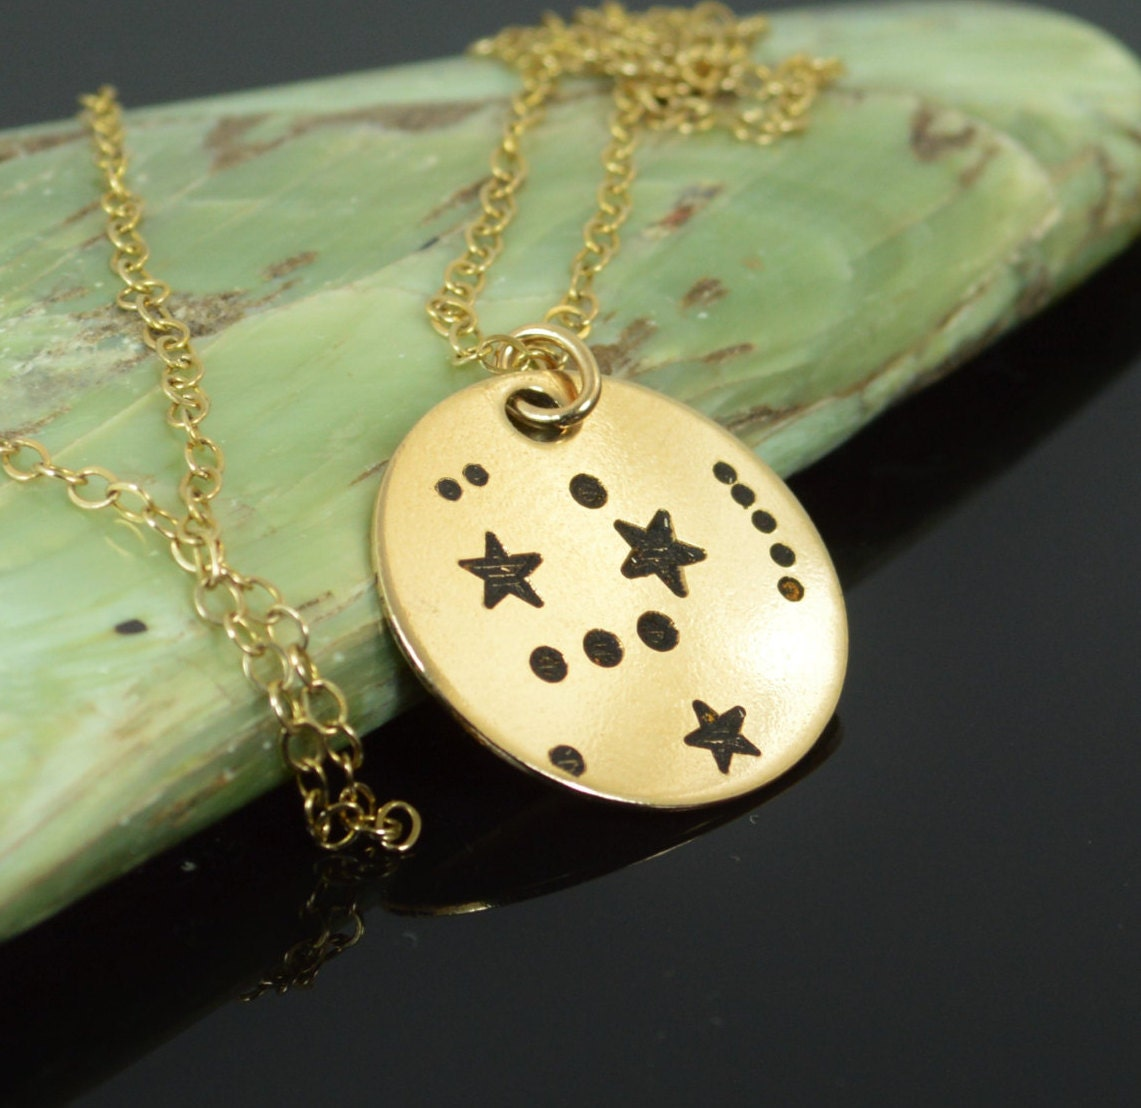 pin constellation orion pendant fashion necklace